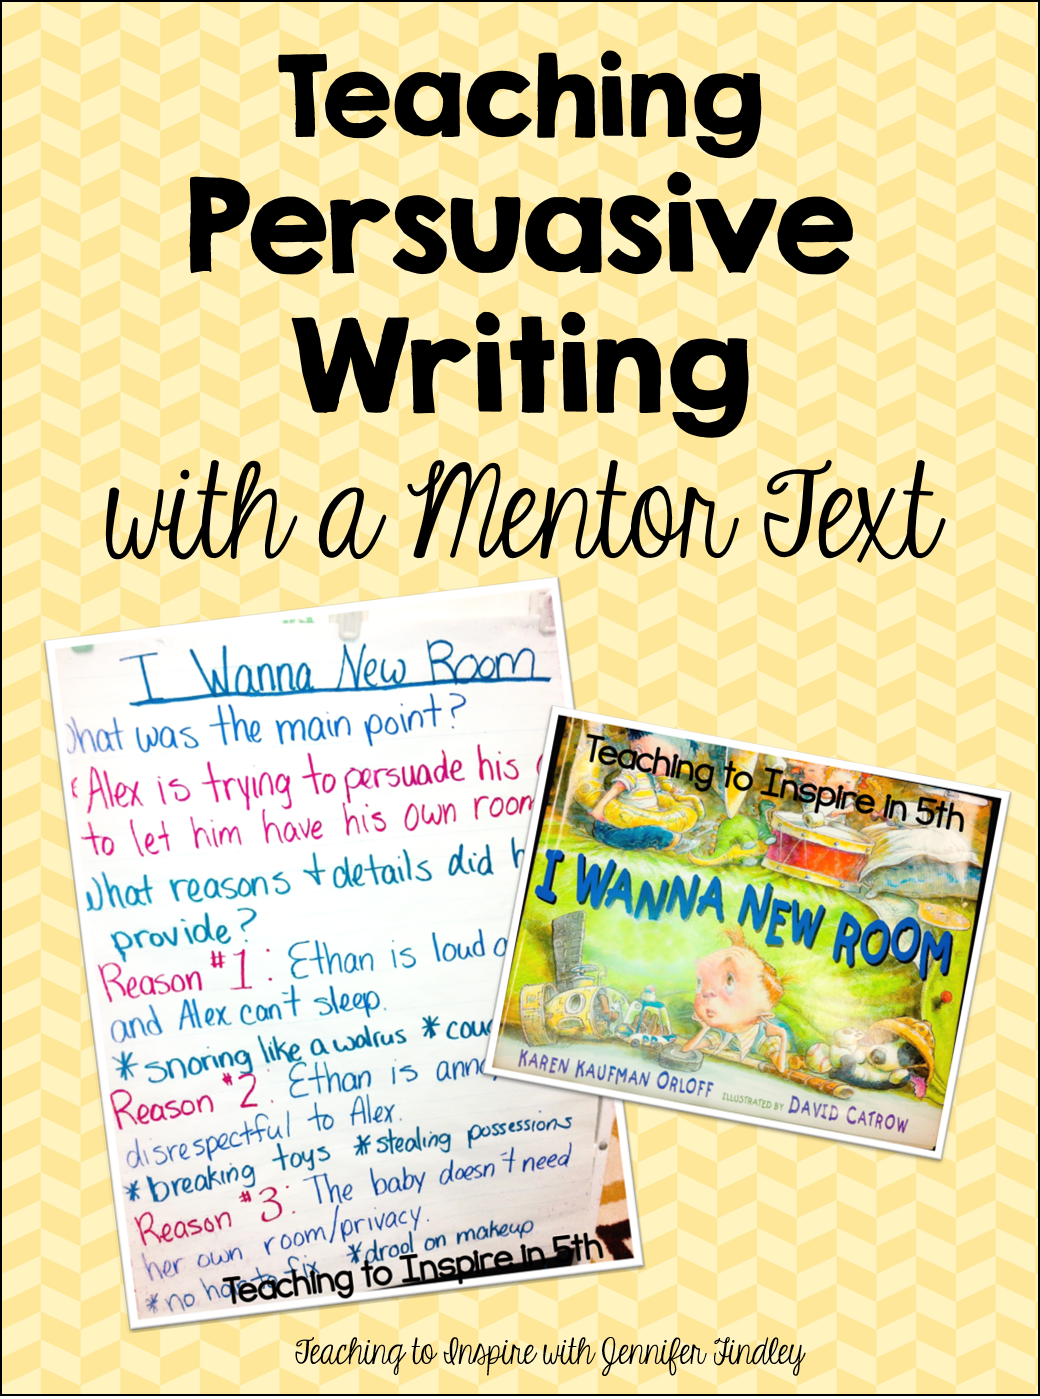 mentor text for persuasive writing A mentor text should ultimately be discussed by students for one of two purposes: 1) to showcase a writing skill found in the text that you want students to notice and then practice in their own writing and 2) to motivate students to write something different-yet-similar that was inspired by the mentor text's idea or structure.